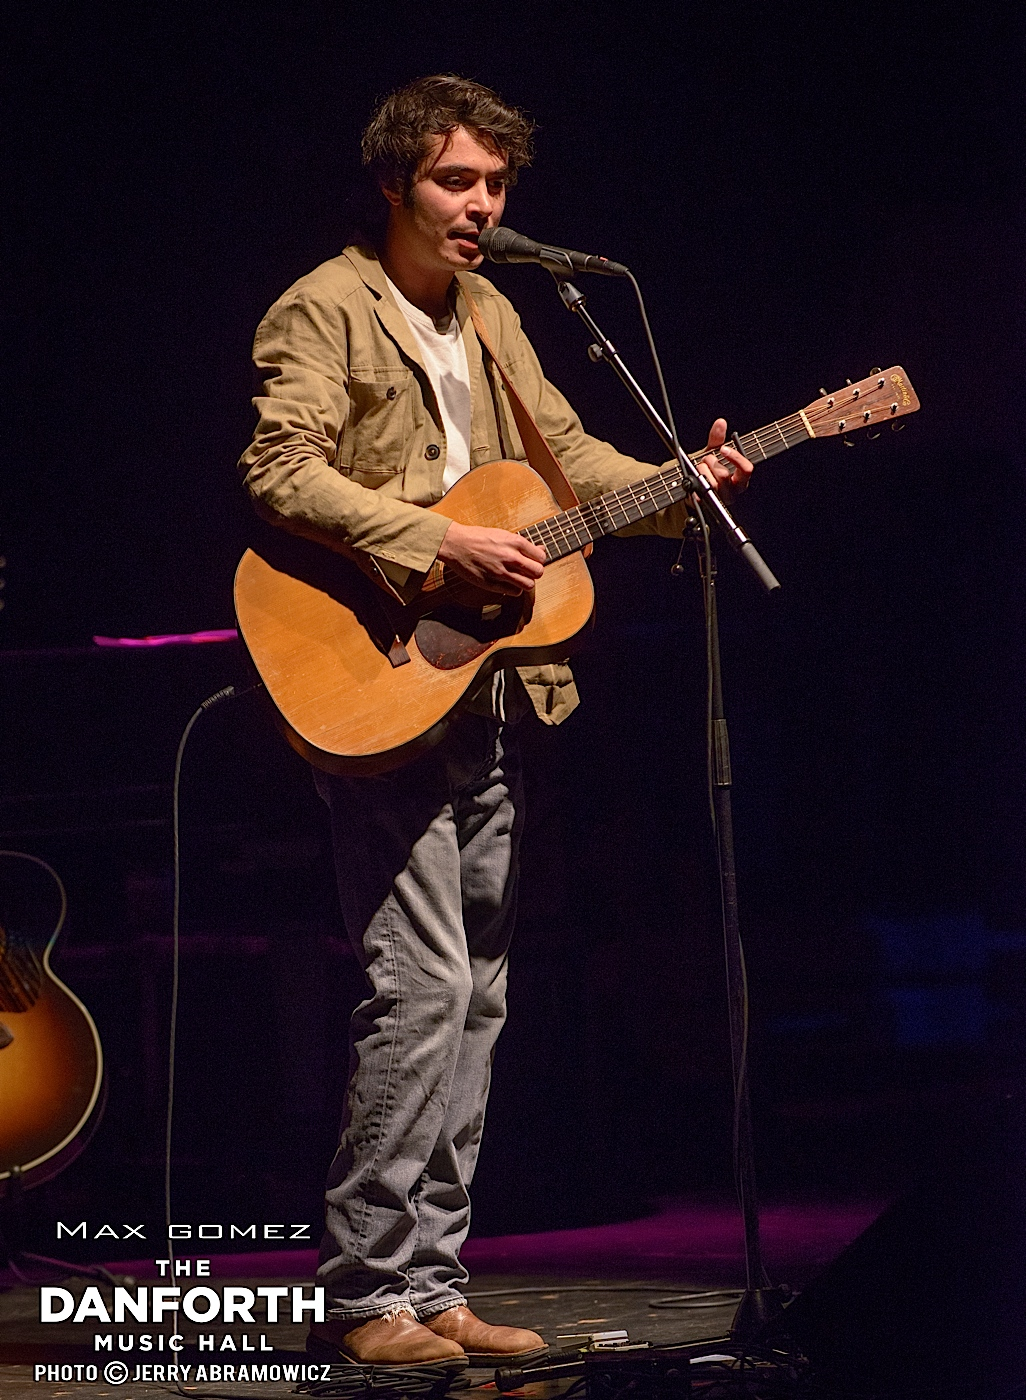 20130611 Max Gomez performs at The Danforth Music Hall Toronto 0037